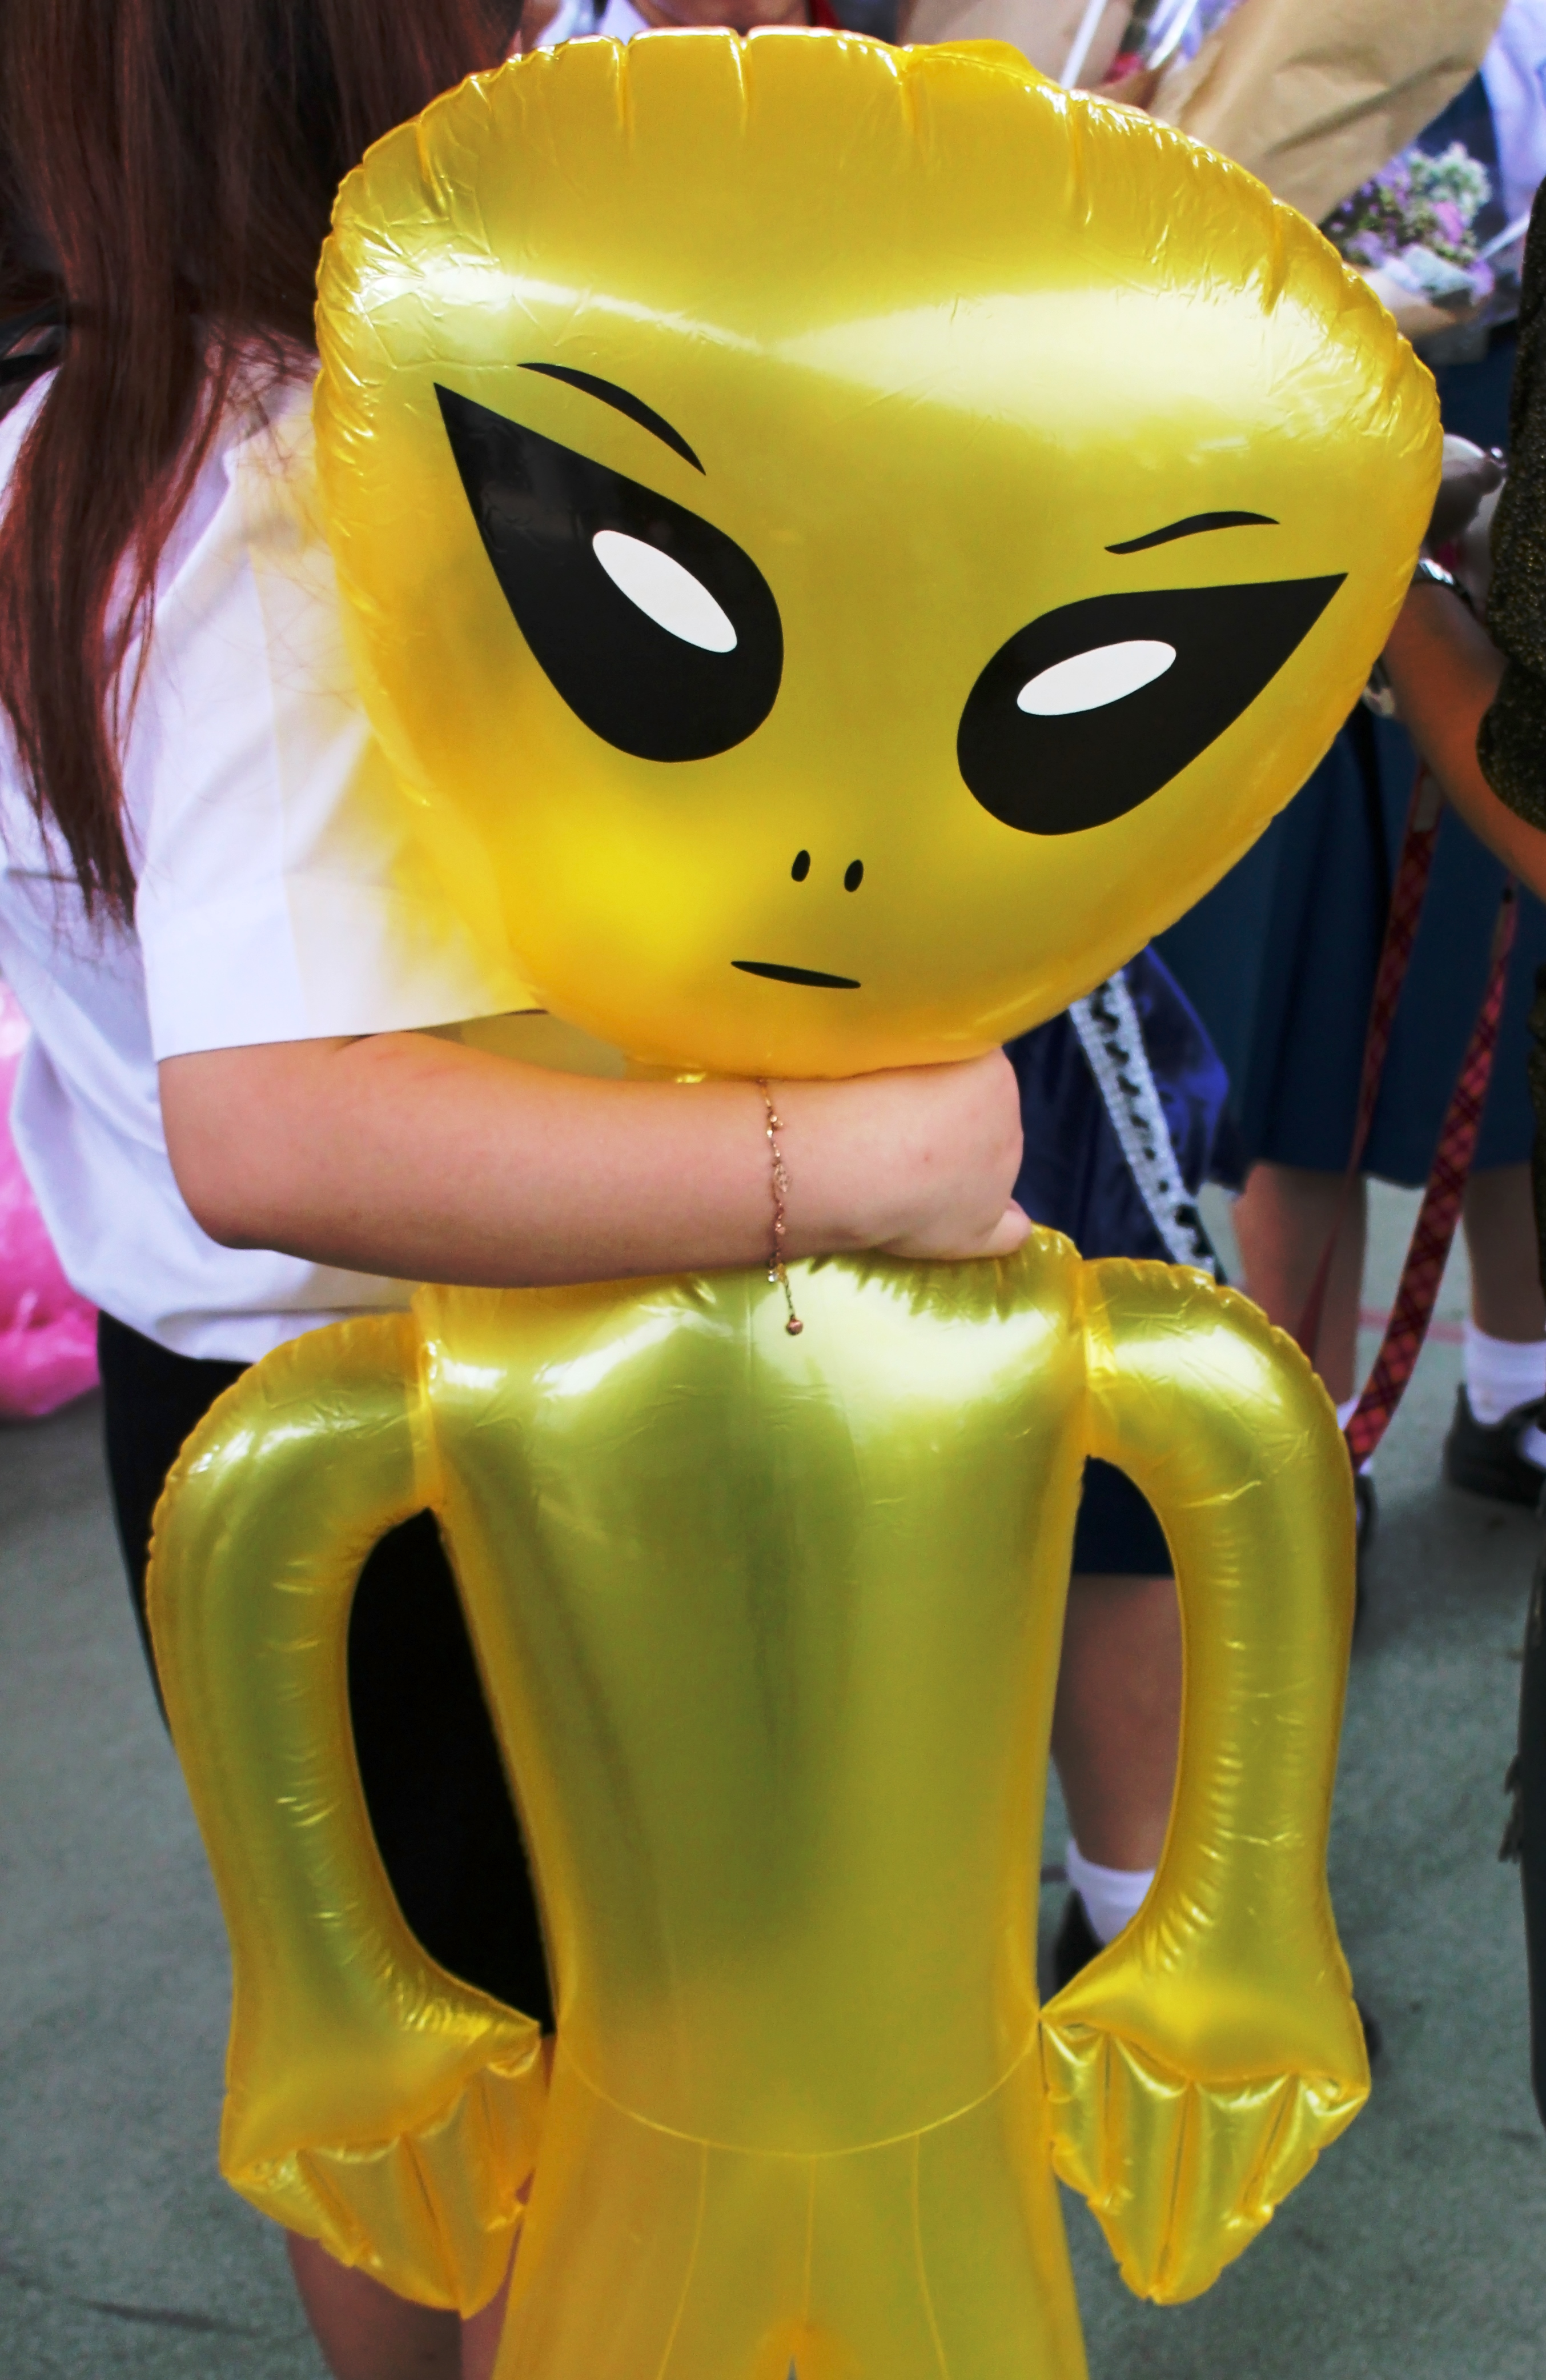 Girl holds an inflatable alien toy, Alien, Blowup, Doll, Editorial, HQ Photo